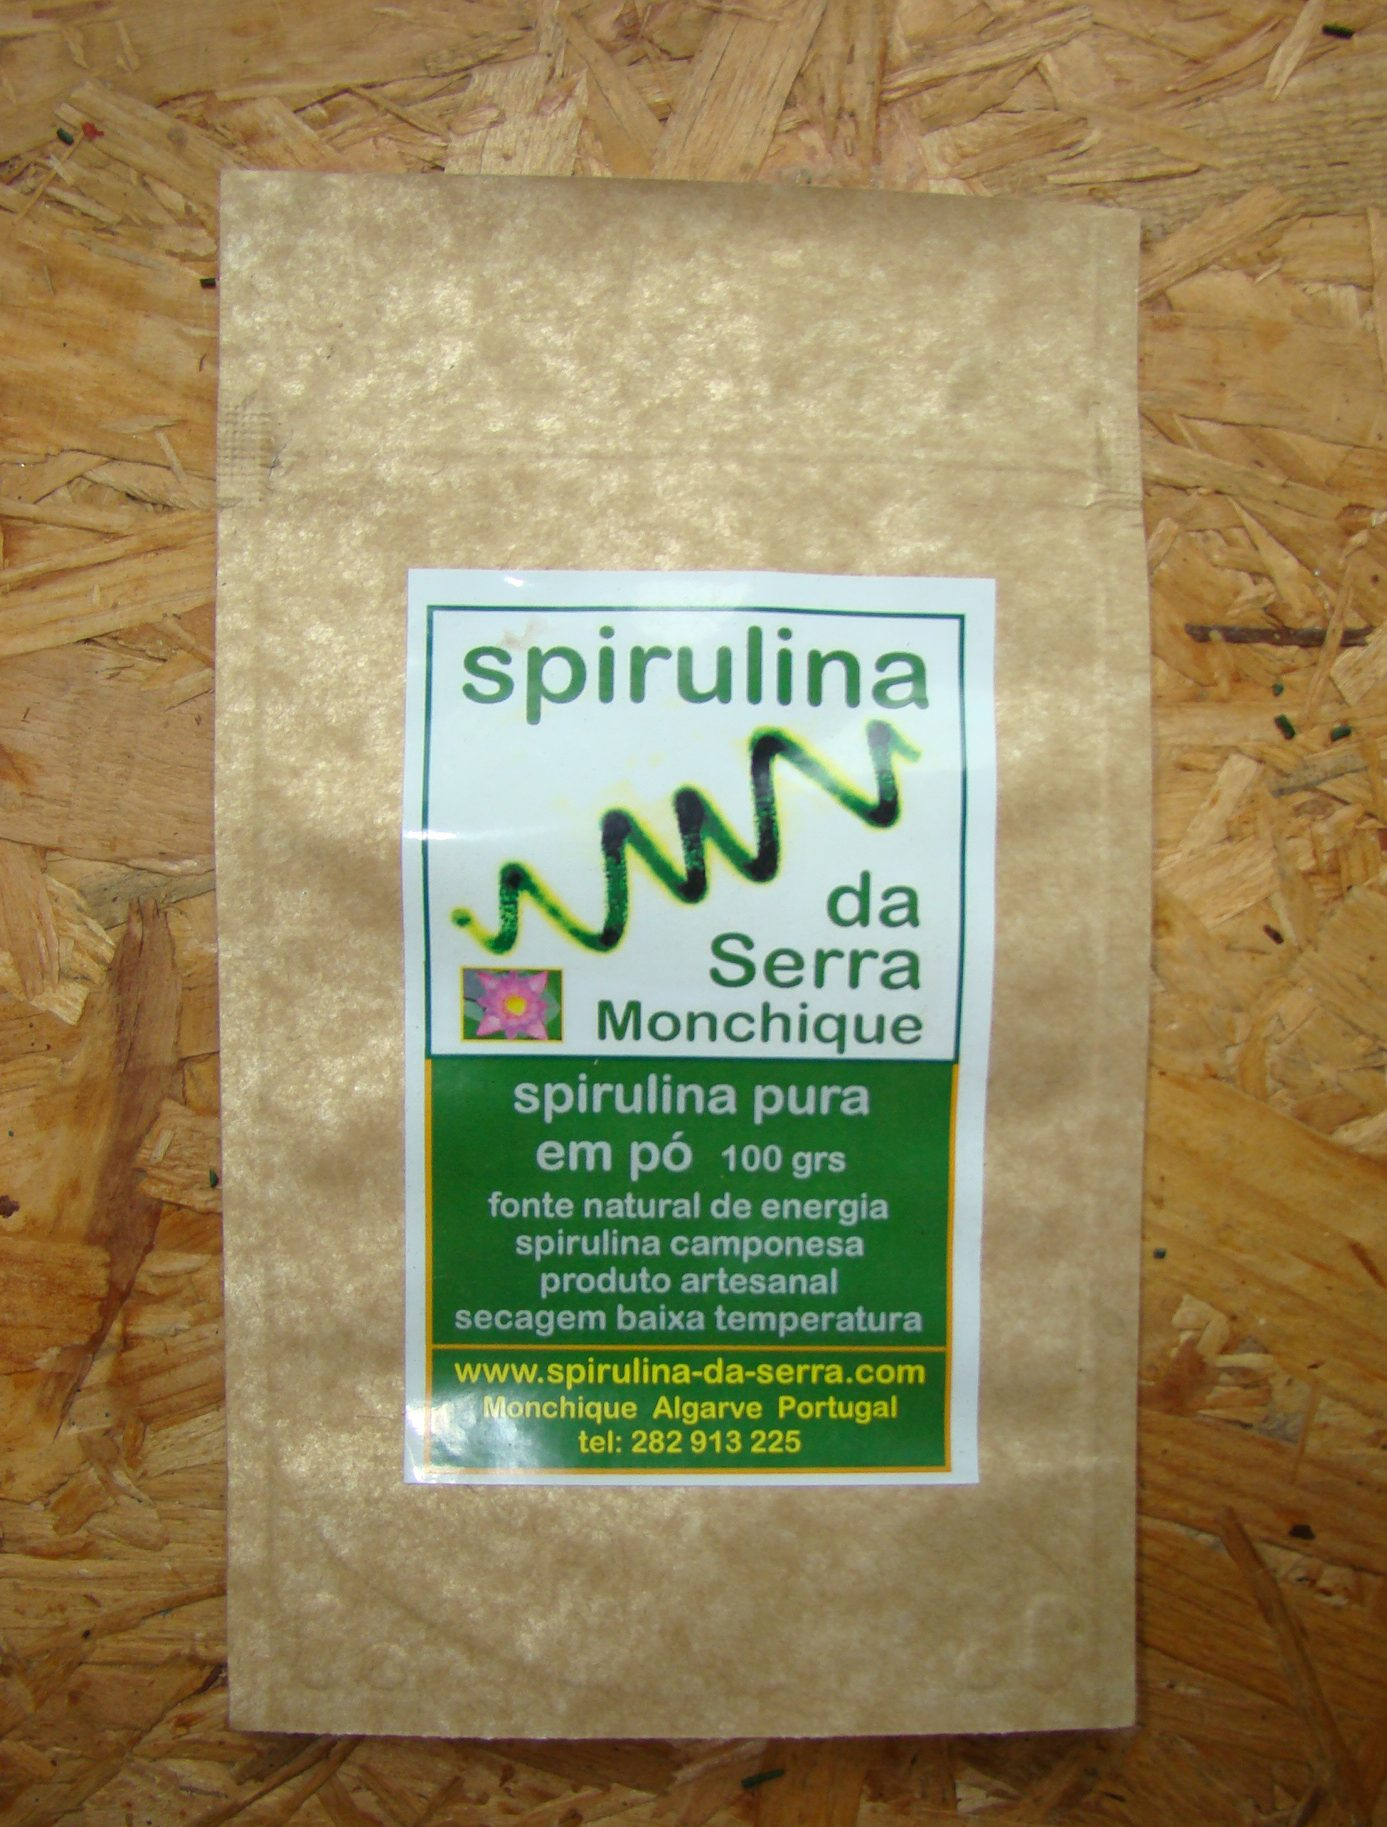 Direct sale of Spirulina powder